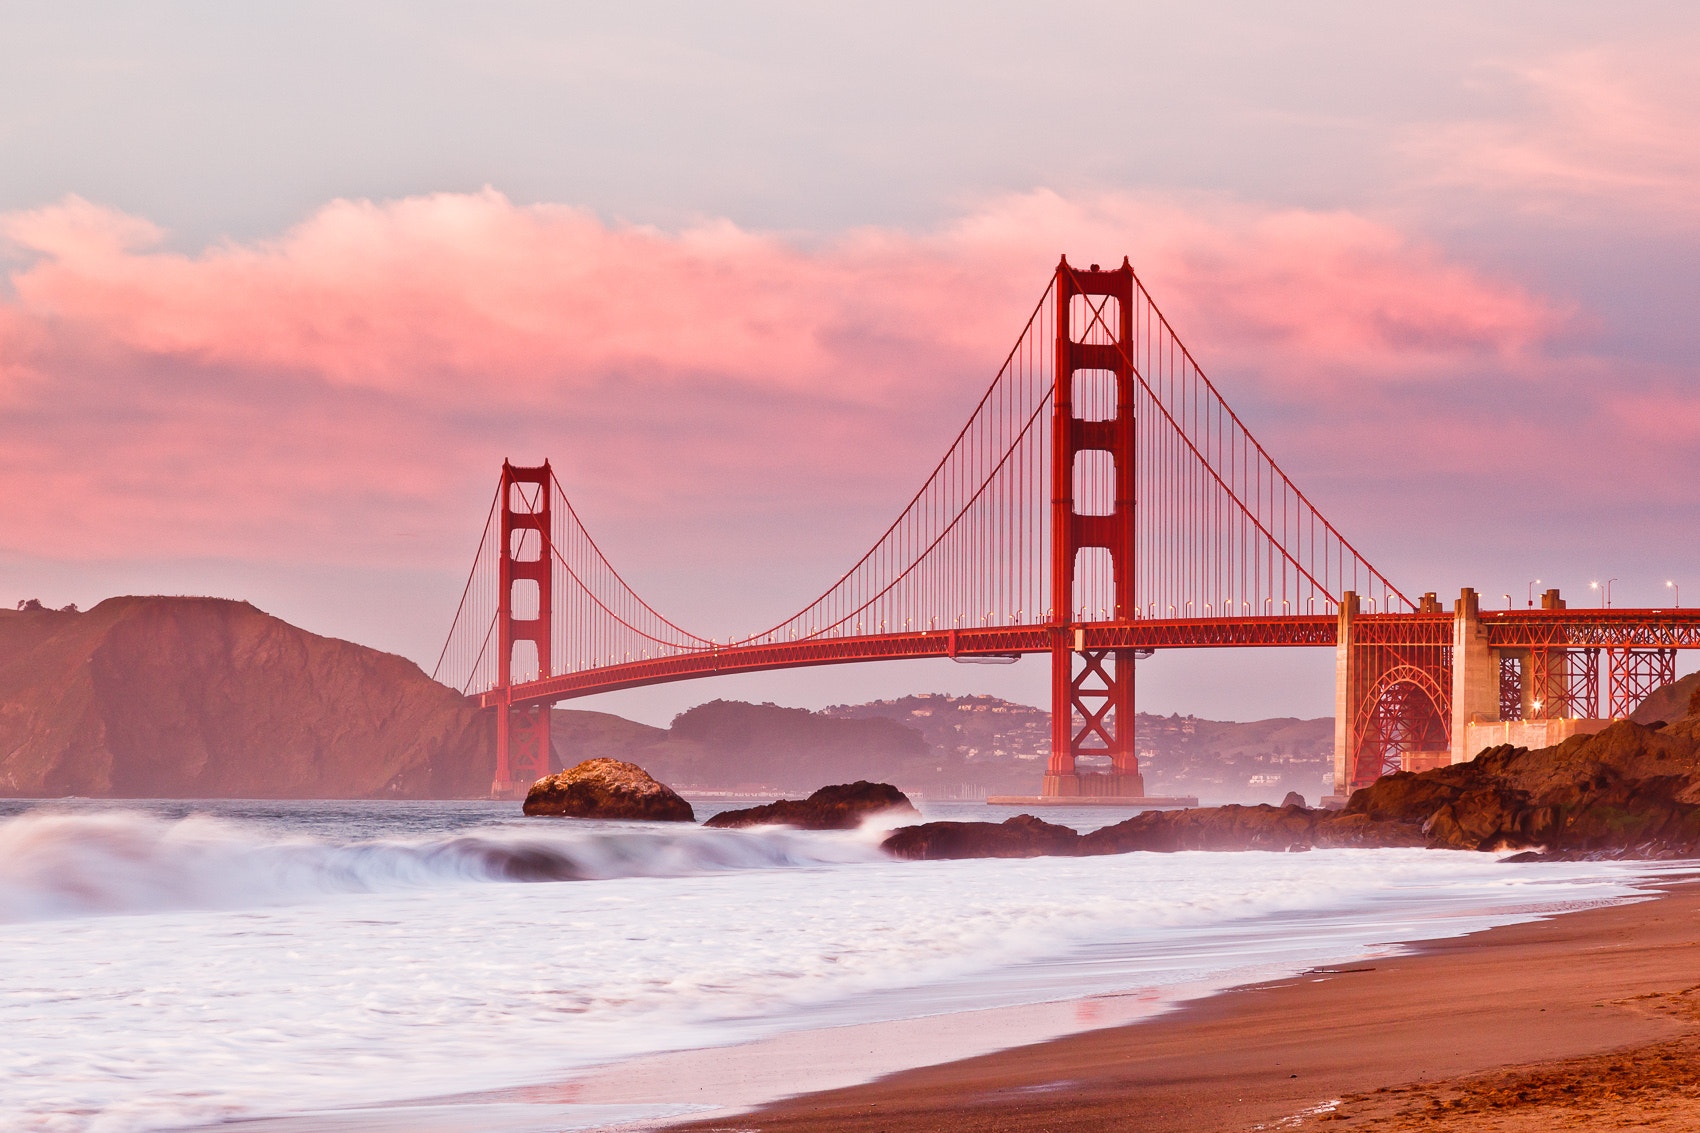 Photograph Painted Golden Gate by Mike Wiacek on 500px